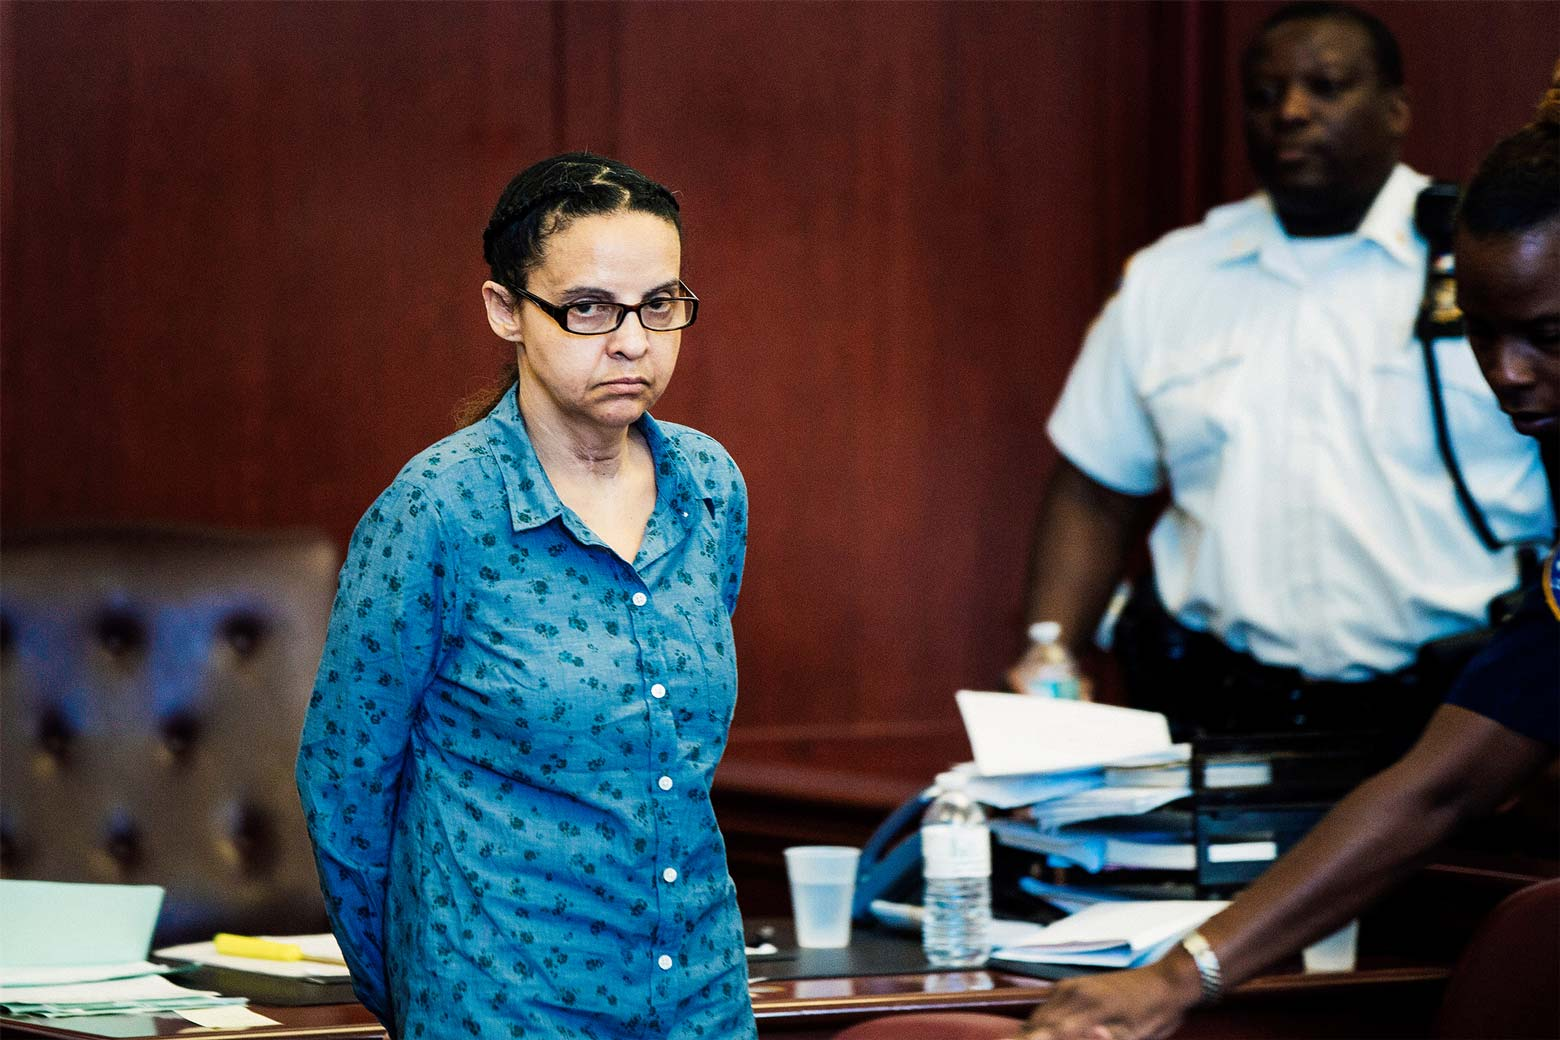 Yoselyn Ortega arrives for a hearing for her trial at Manhattan Supreme Court in New York City on July 8, 2013.